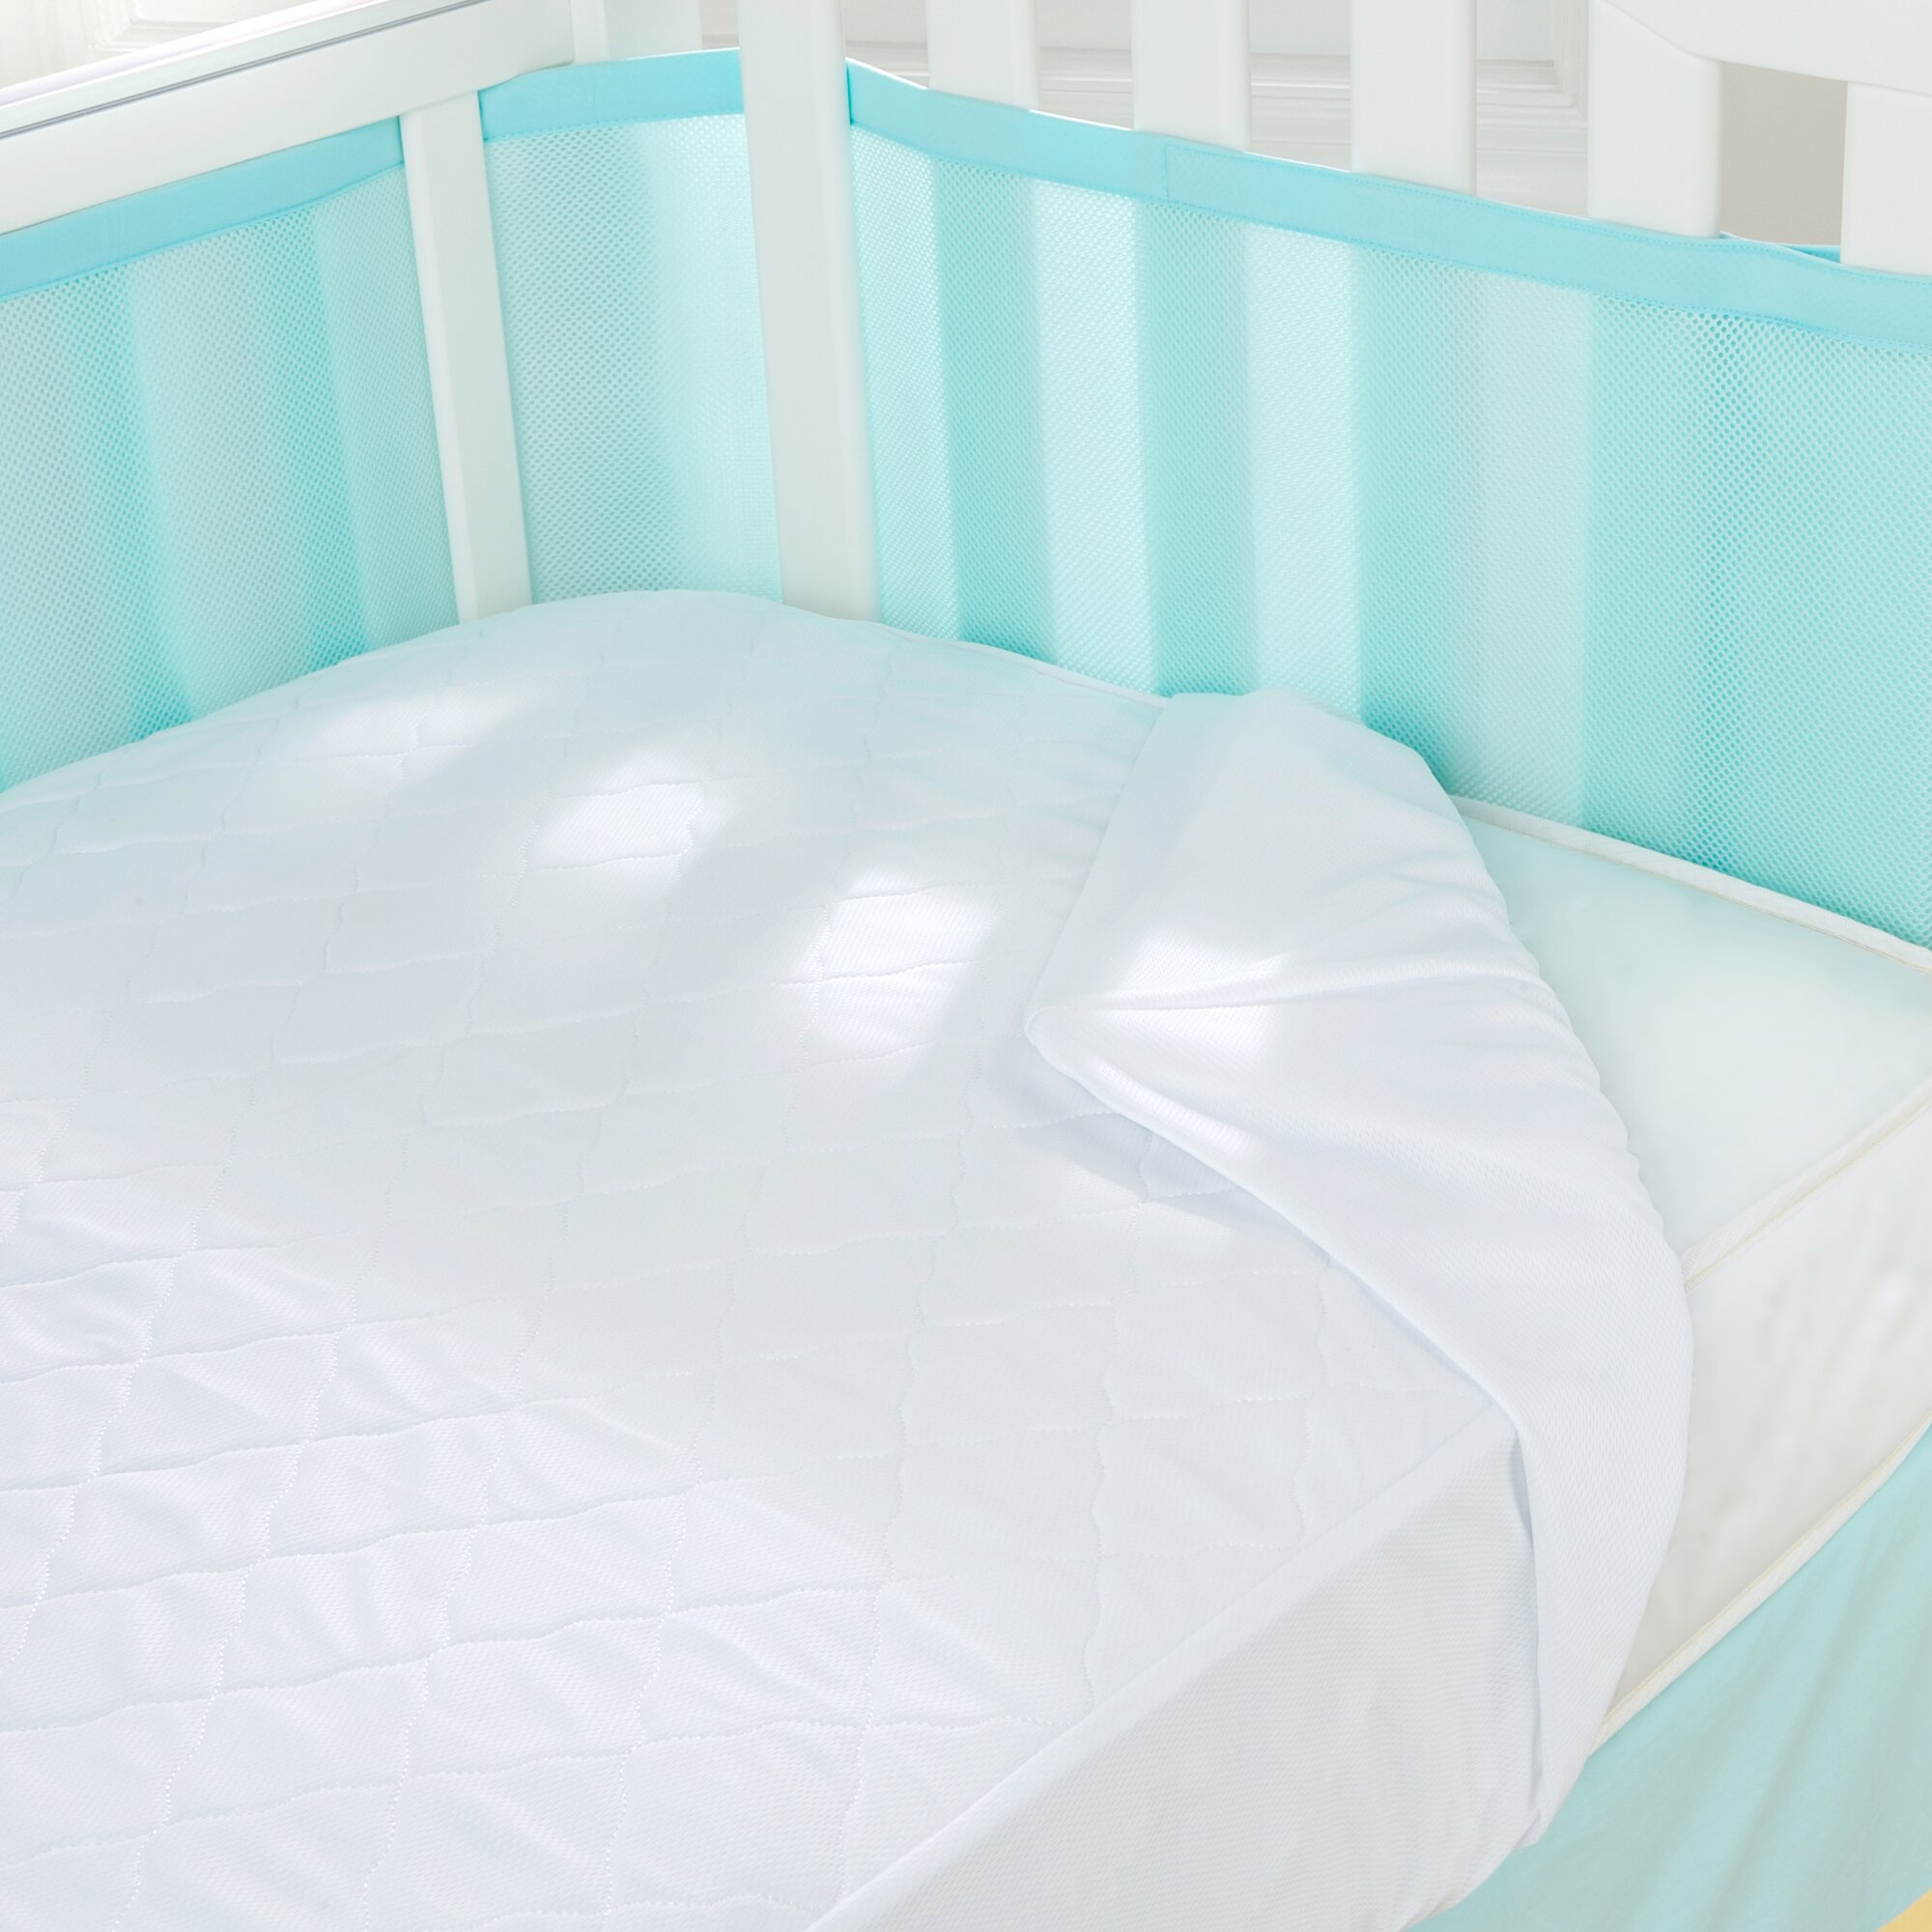 Best baby crib mattress 2013 - Breathablebaby Air Mesh Waterproof Crib Mattress Pad